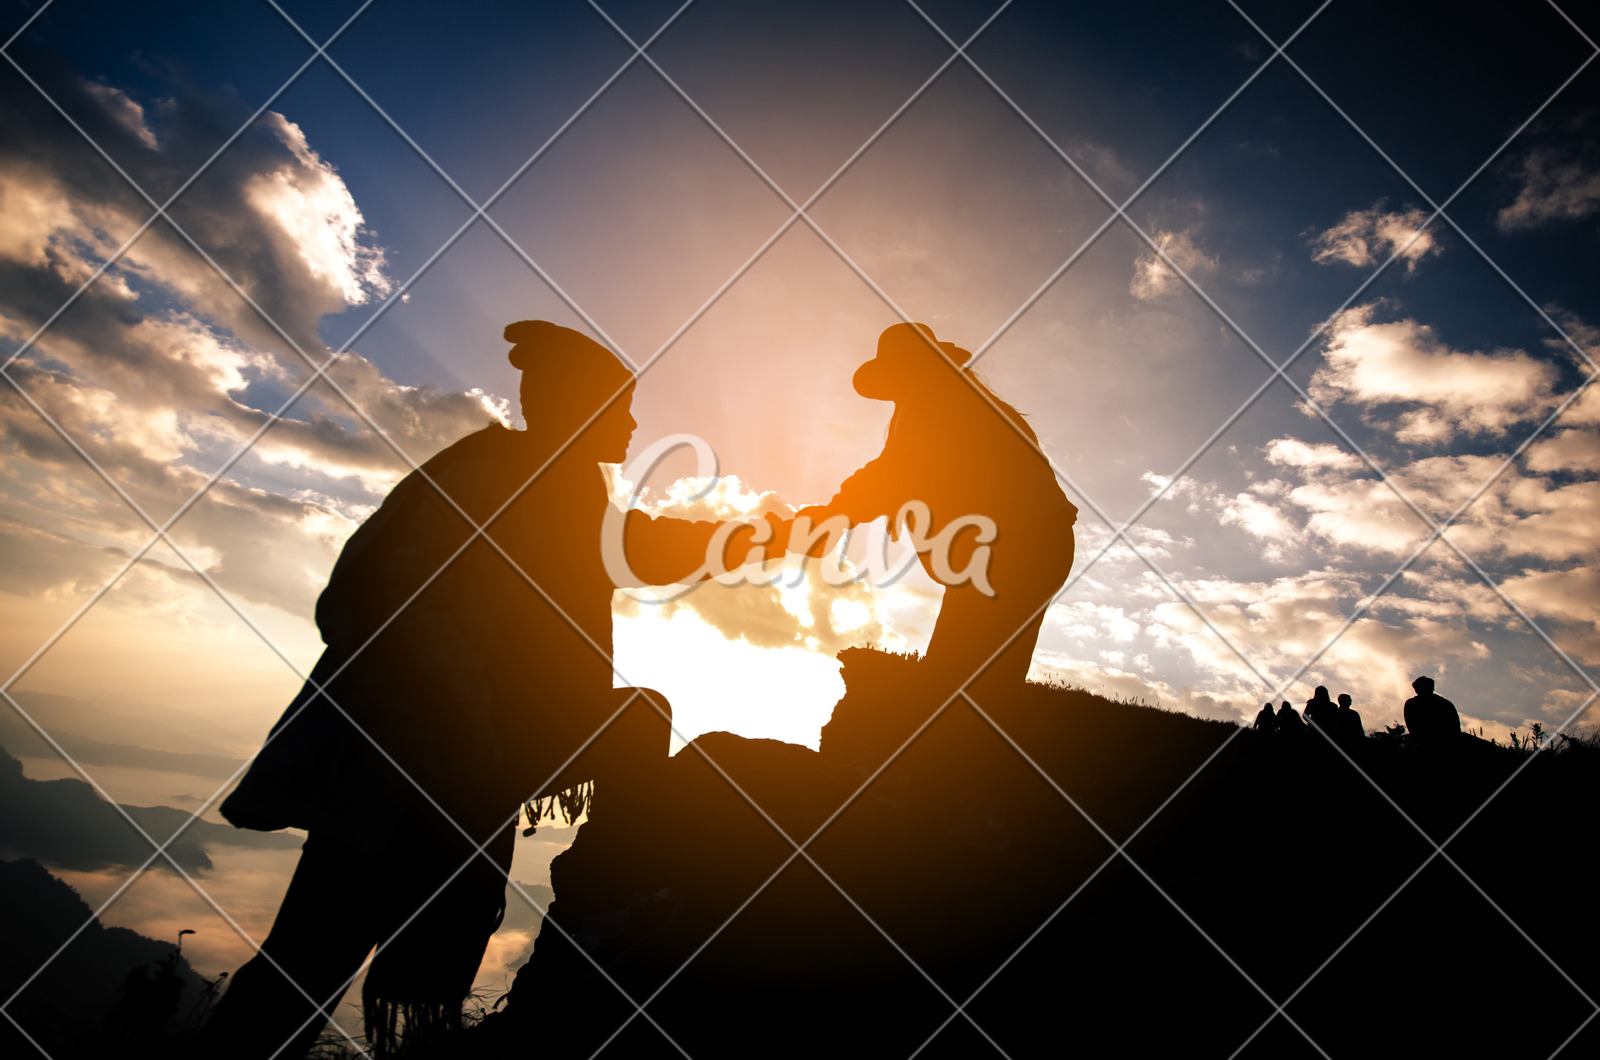 silhouette of people helping